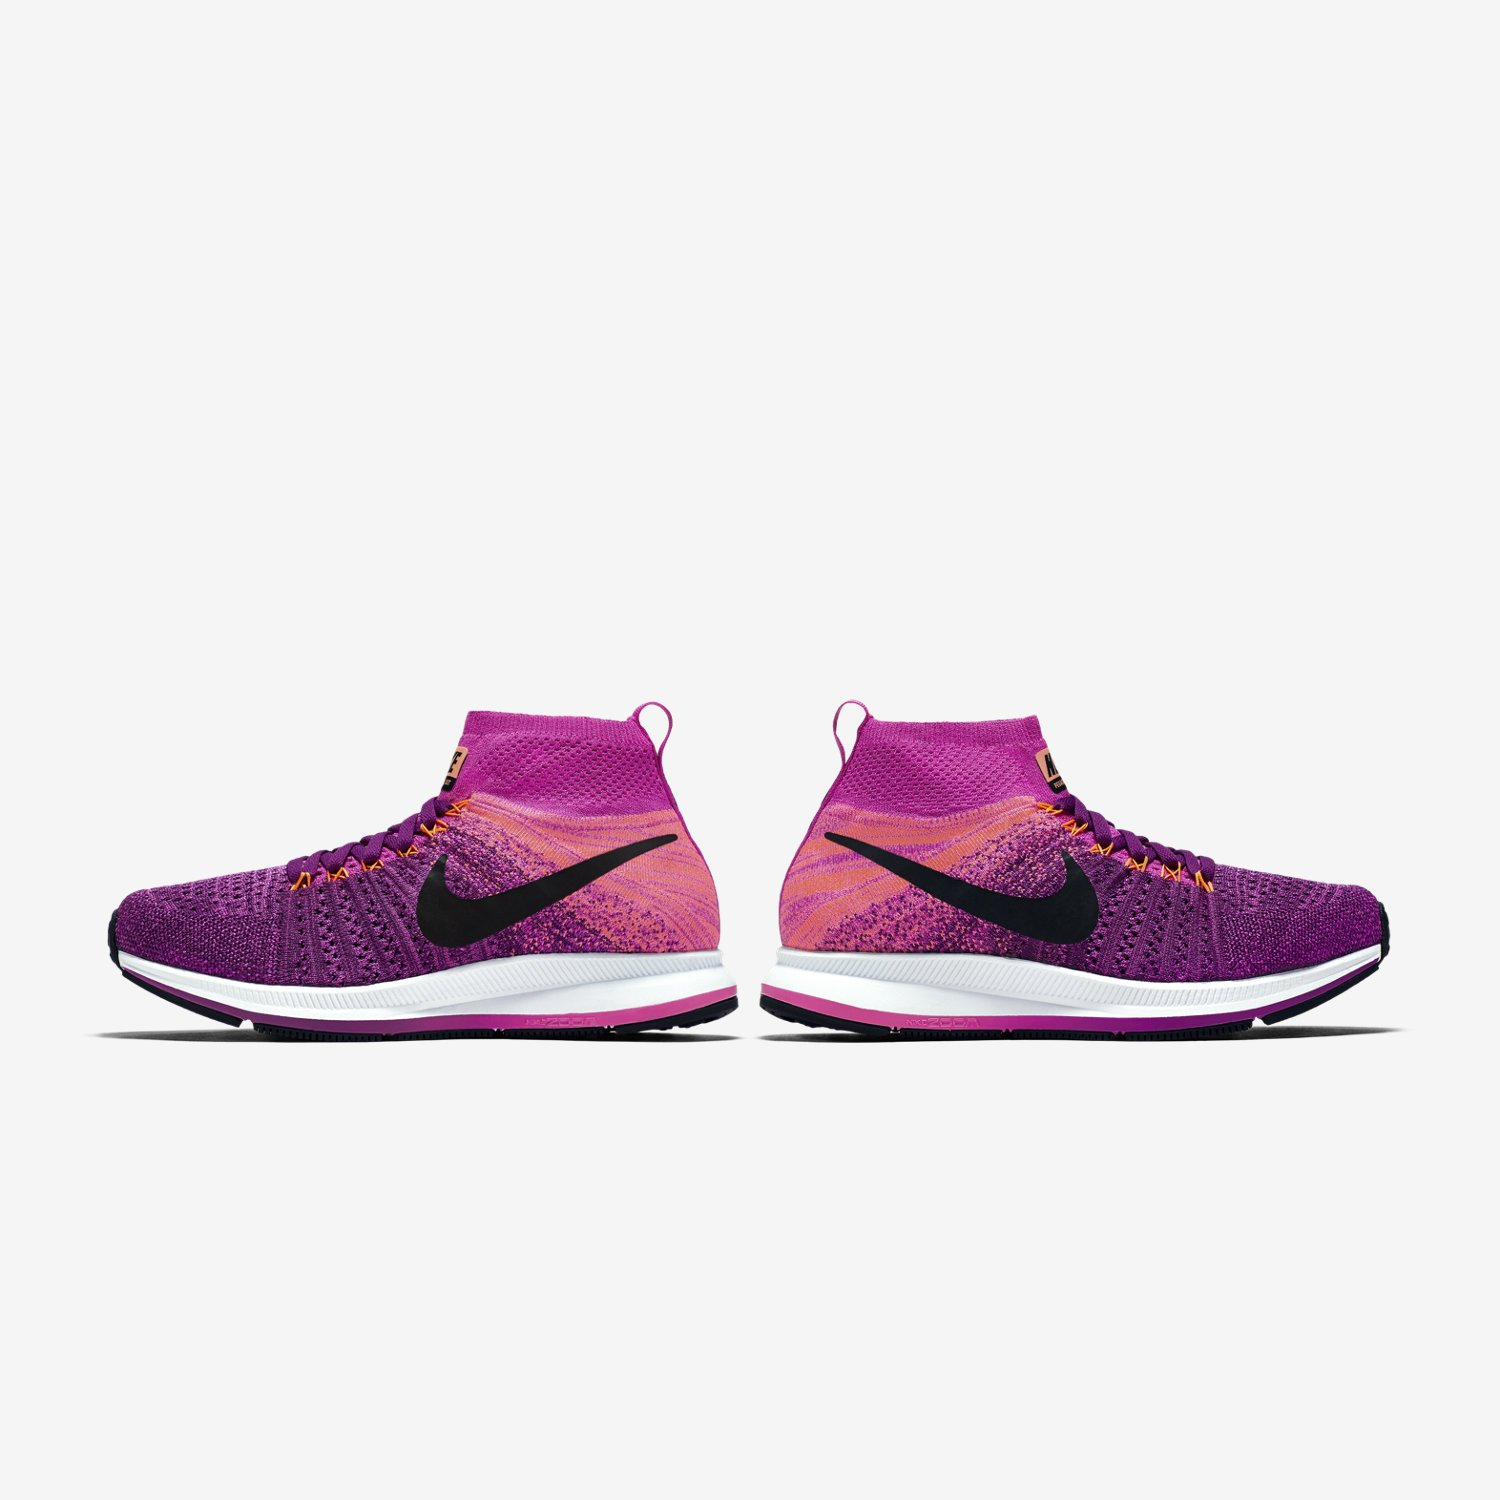 a7c619524815 Nike Air Zoom Pegasus All Out Flyknit - Big  size 7 c62c4 cde9b Amazon.com  NIKE Girls ZM Pegasus All Out Flyknit Big Kid ...